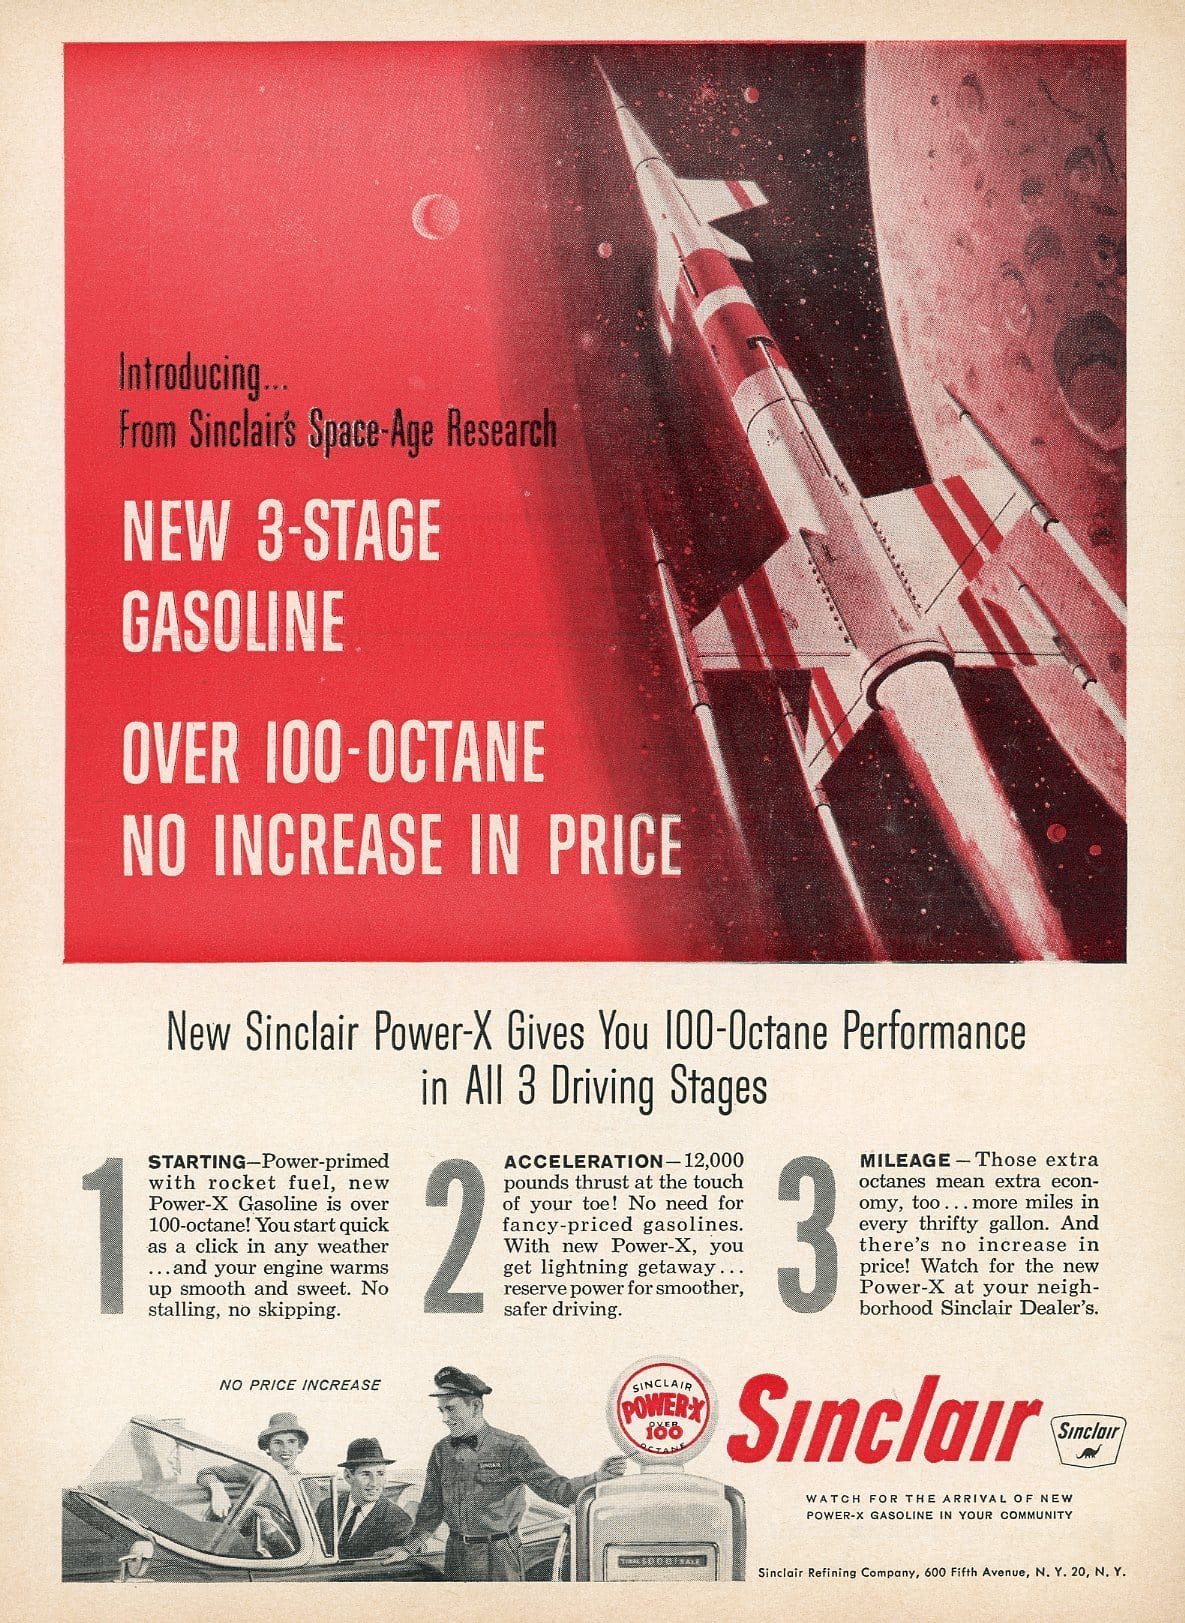 1940's Sinclair Power-X Gasoline Advertisement - Transportation Wall Decor - Gift For Him